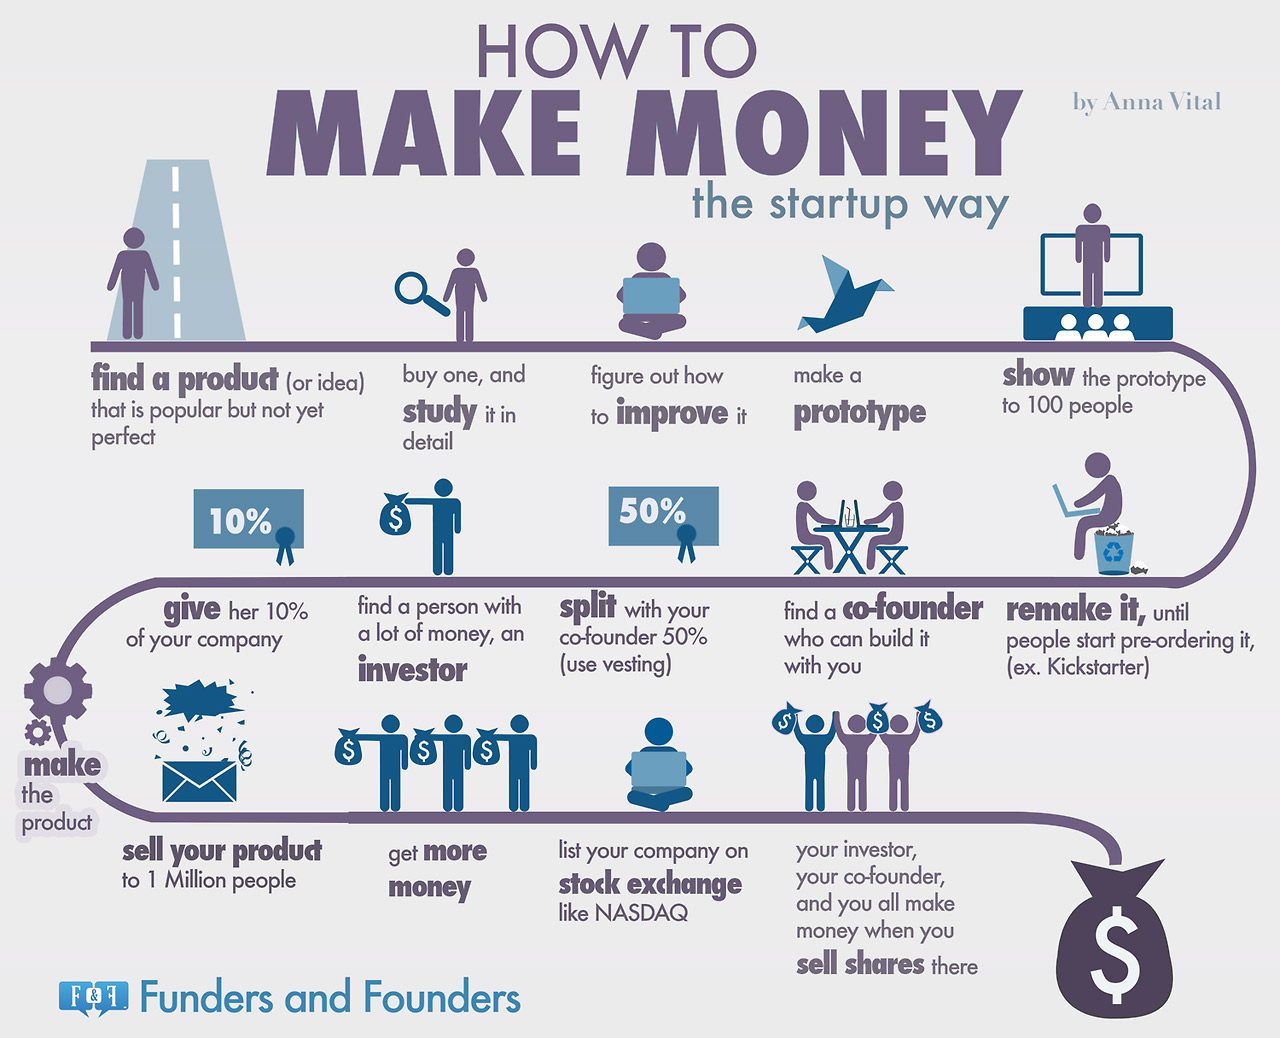 How to make money - startup